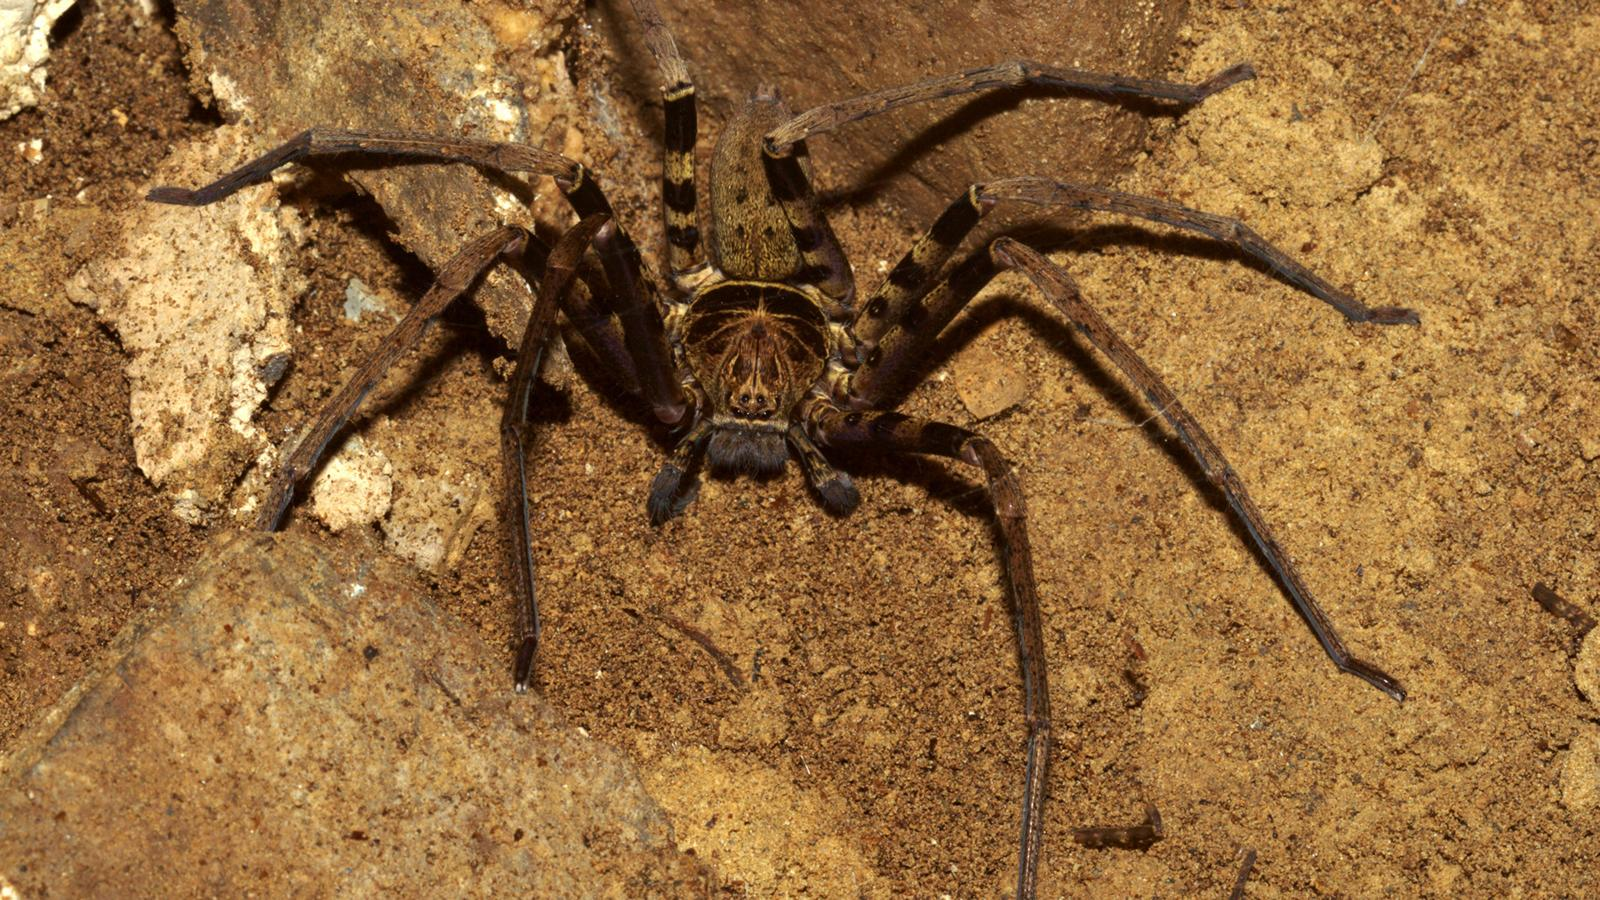 Giant huntsman spider (Heteropoda maxima) (Credit Michal Cerny/Alamy Stock Photo & The worldu0027s largest spider is the size of a dinner plate u2013 The ...